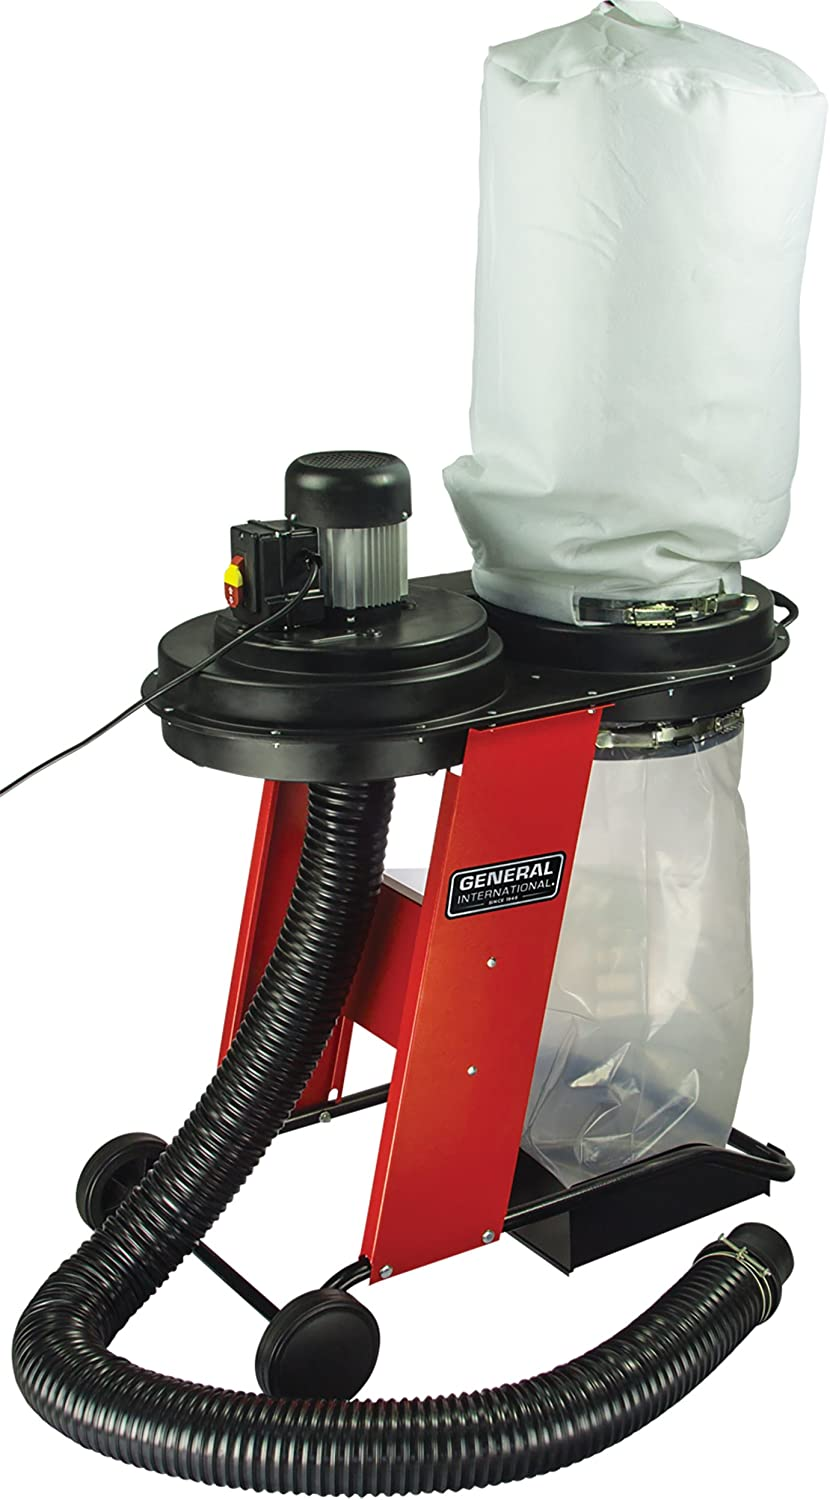 GENERAL INTERNATIONAL Portable Dust Collector - 17 Gallon Debris Vacuum with Heavy-Duty Wheels & Reusable Collection Bag - BT8010